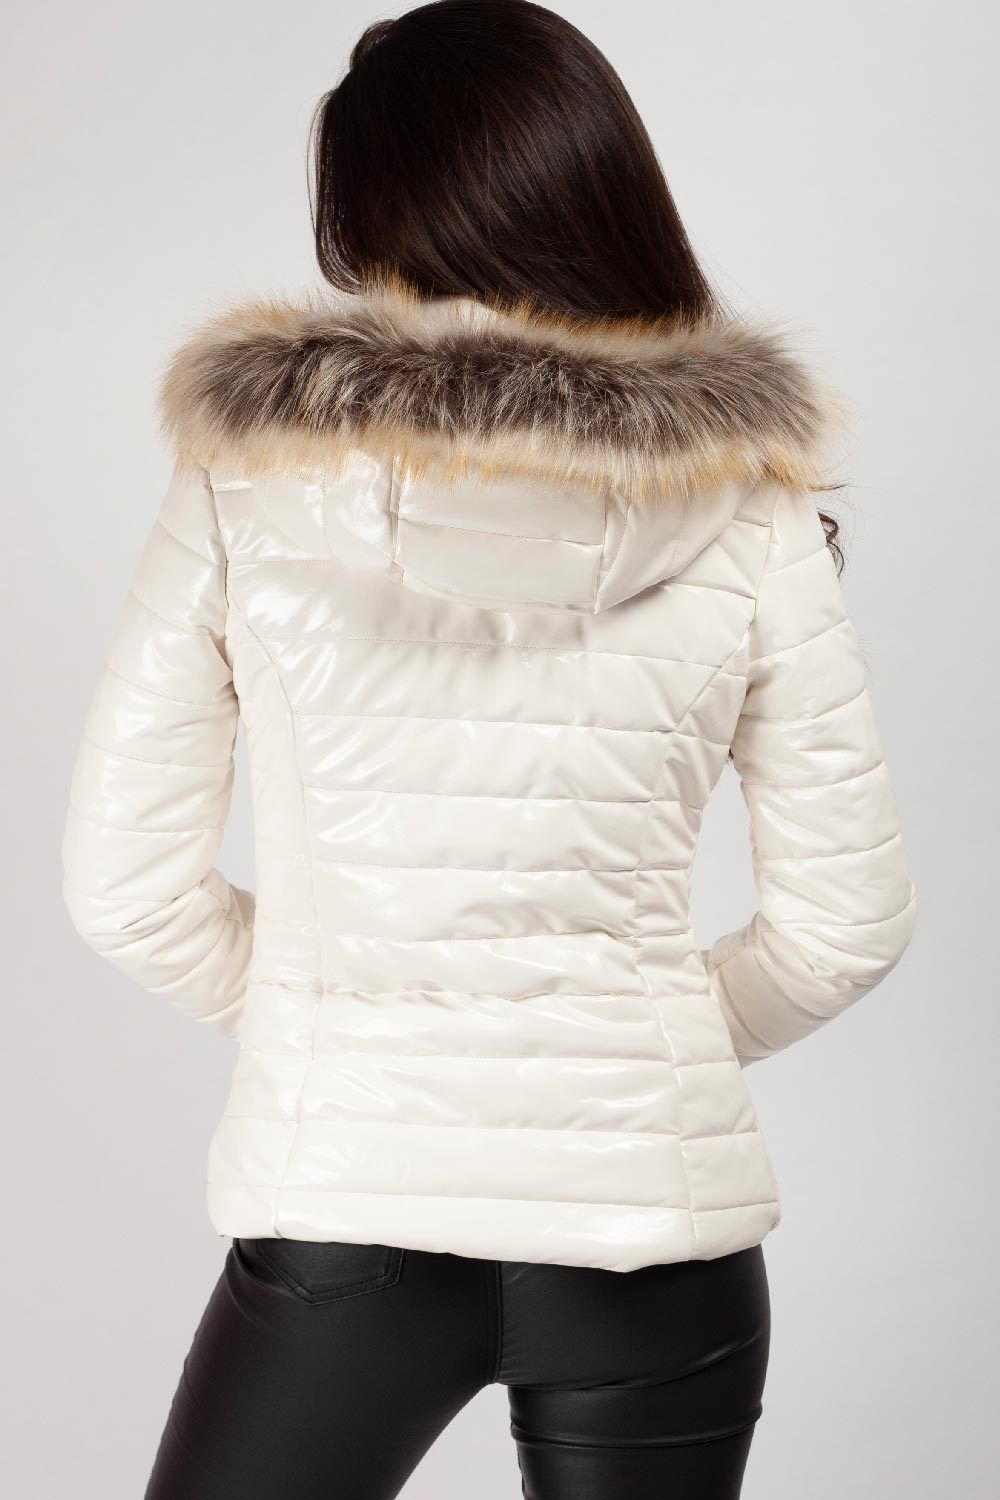 Wet Look Puffer Coat With Faux Fur Hood in 2020 Faux fur